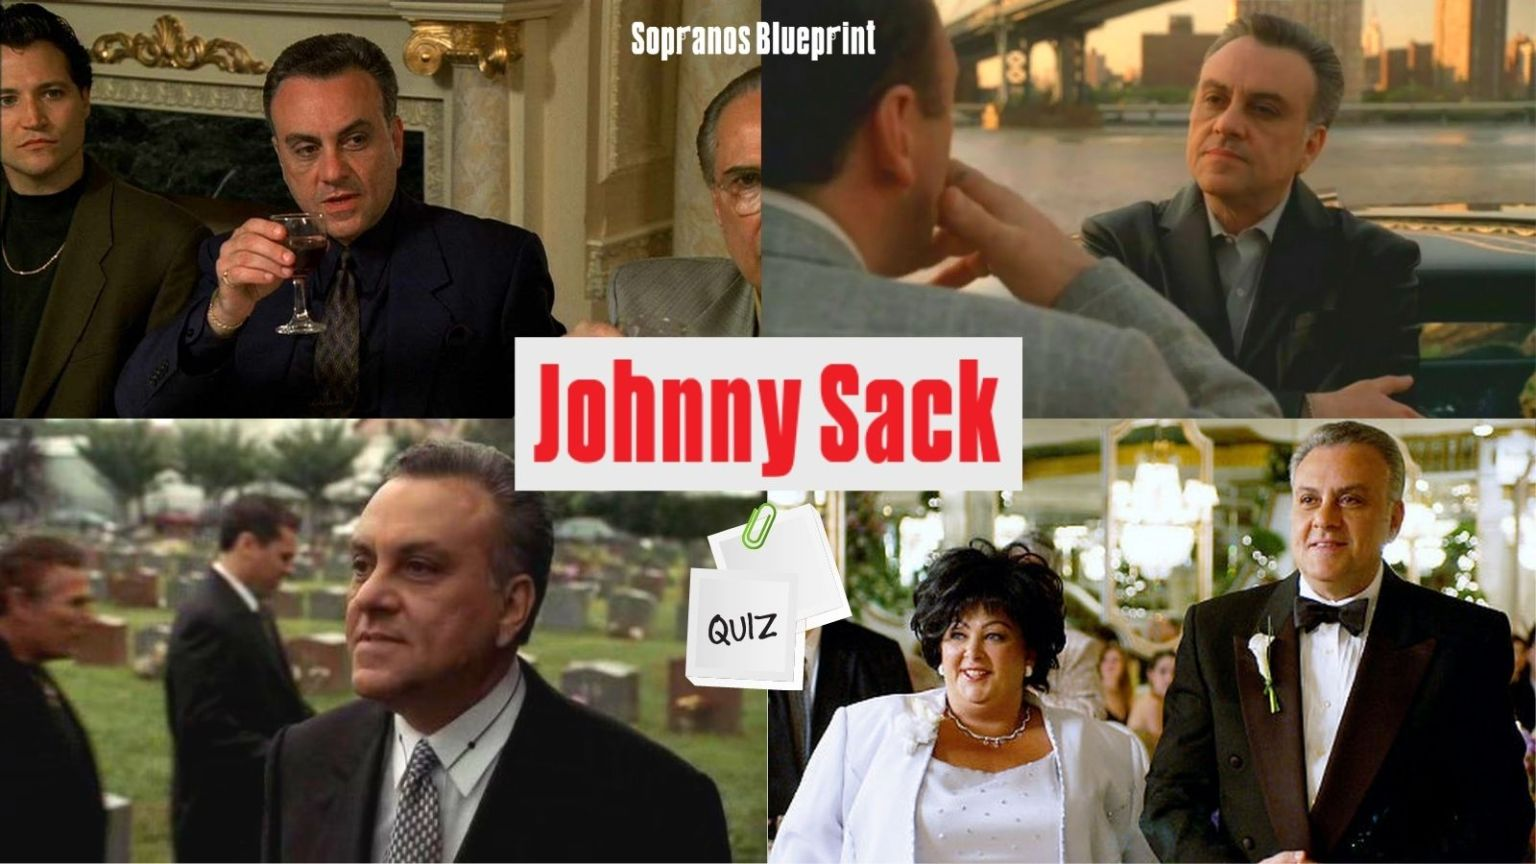 How Much Do You Know About The Sopranos Character Johnny Sack?